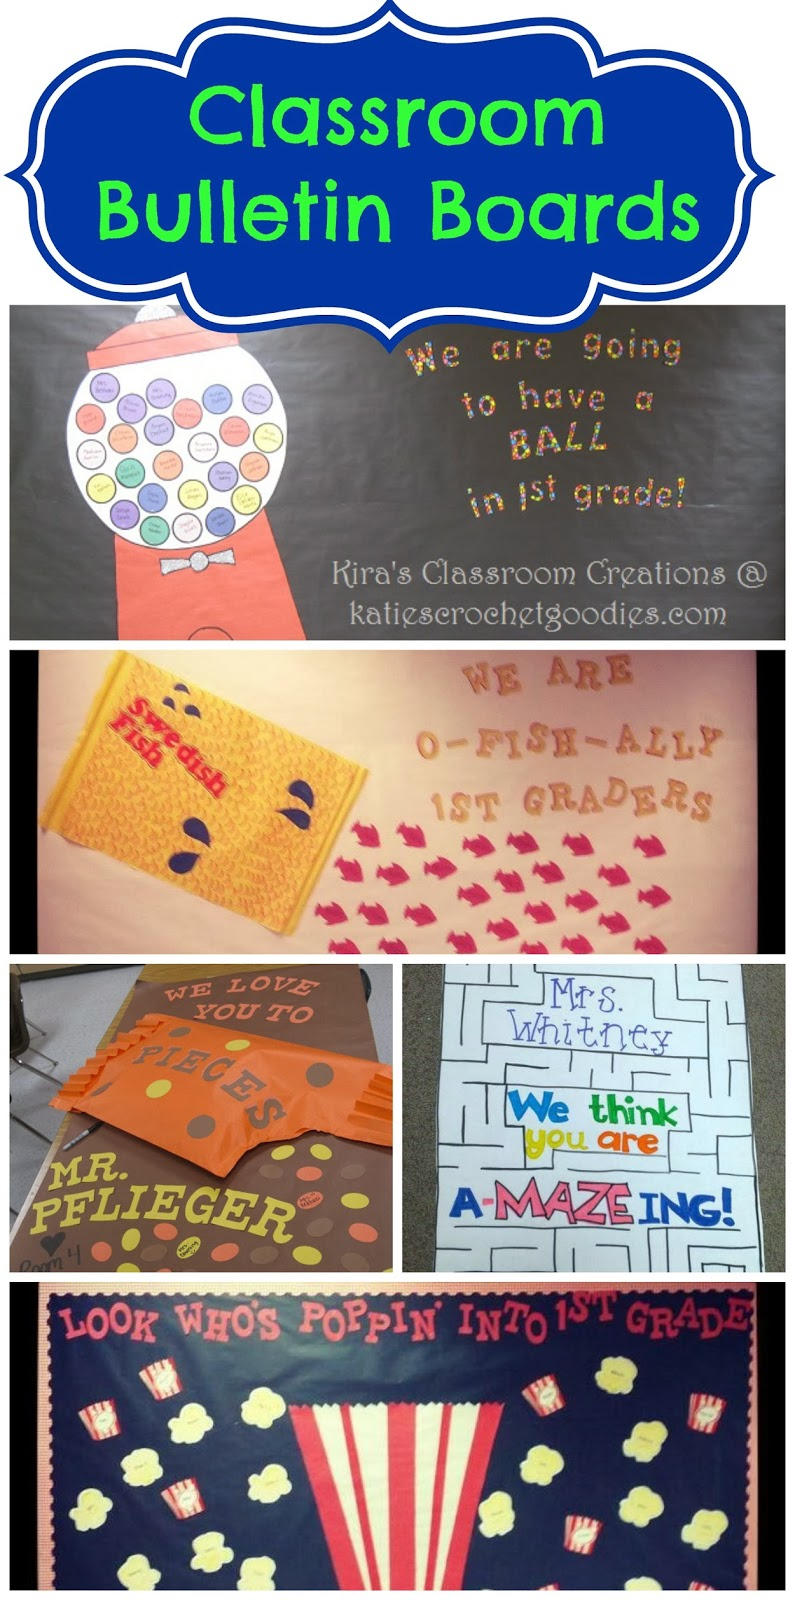 Classroom Ideas Bulletin Boards ~ Classroom bulletin board poster inspiration katie s